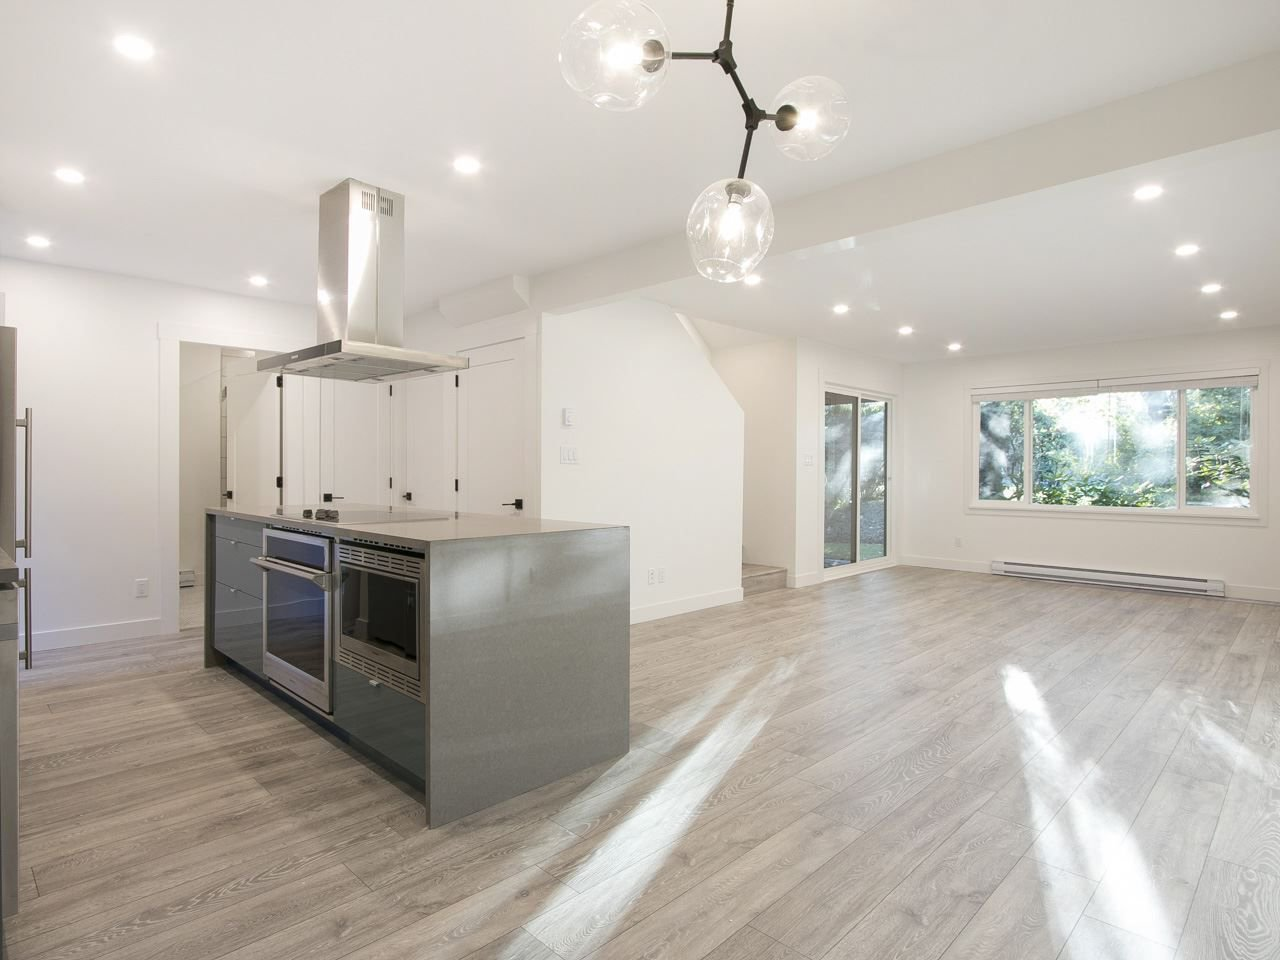 """Main Photo: 4308 GARDEN GROVE Drive in Burnaby: Greentree Village Townhouse for sale in """"GREENTREE VILLAGE"""" (Burnaby South)  : MLS®# R2211875"""